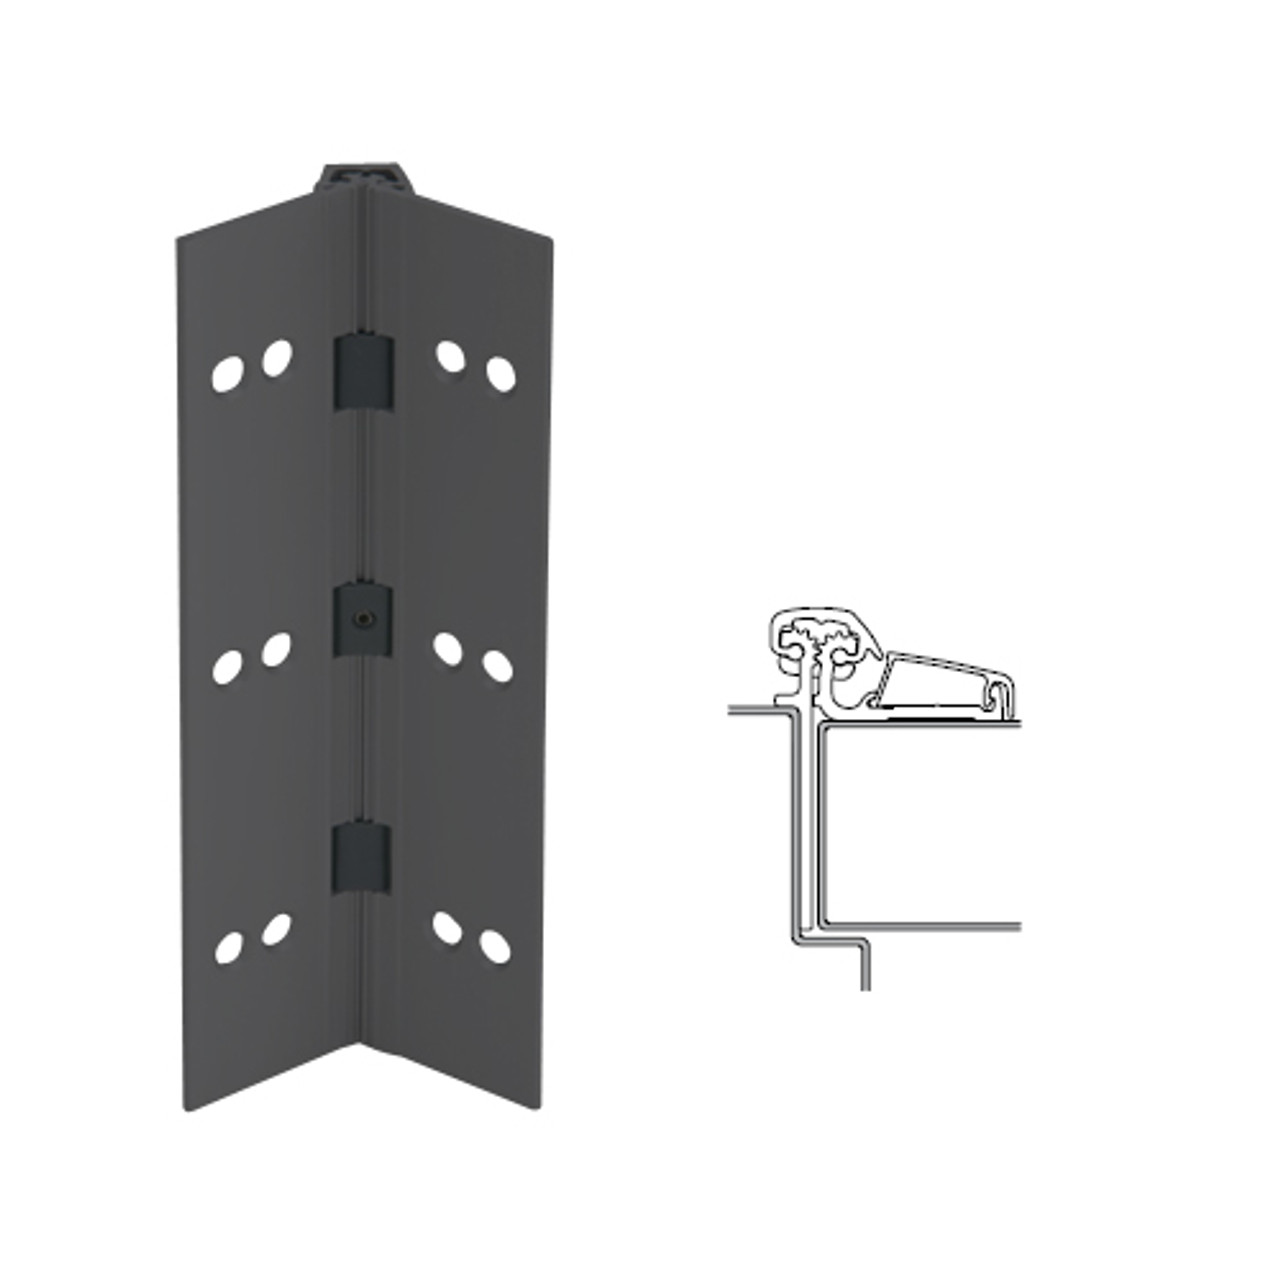 054XY-315AN-85-SECWDHM IVES Adjustable Half Surface Continuous Geared Hinges with Security Screws - Hex Pin Drive in Anodized Black